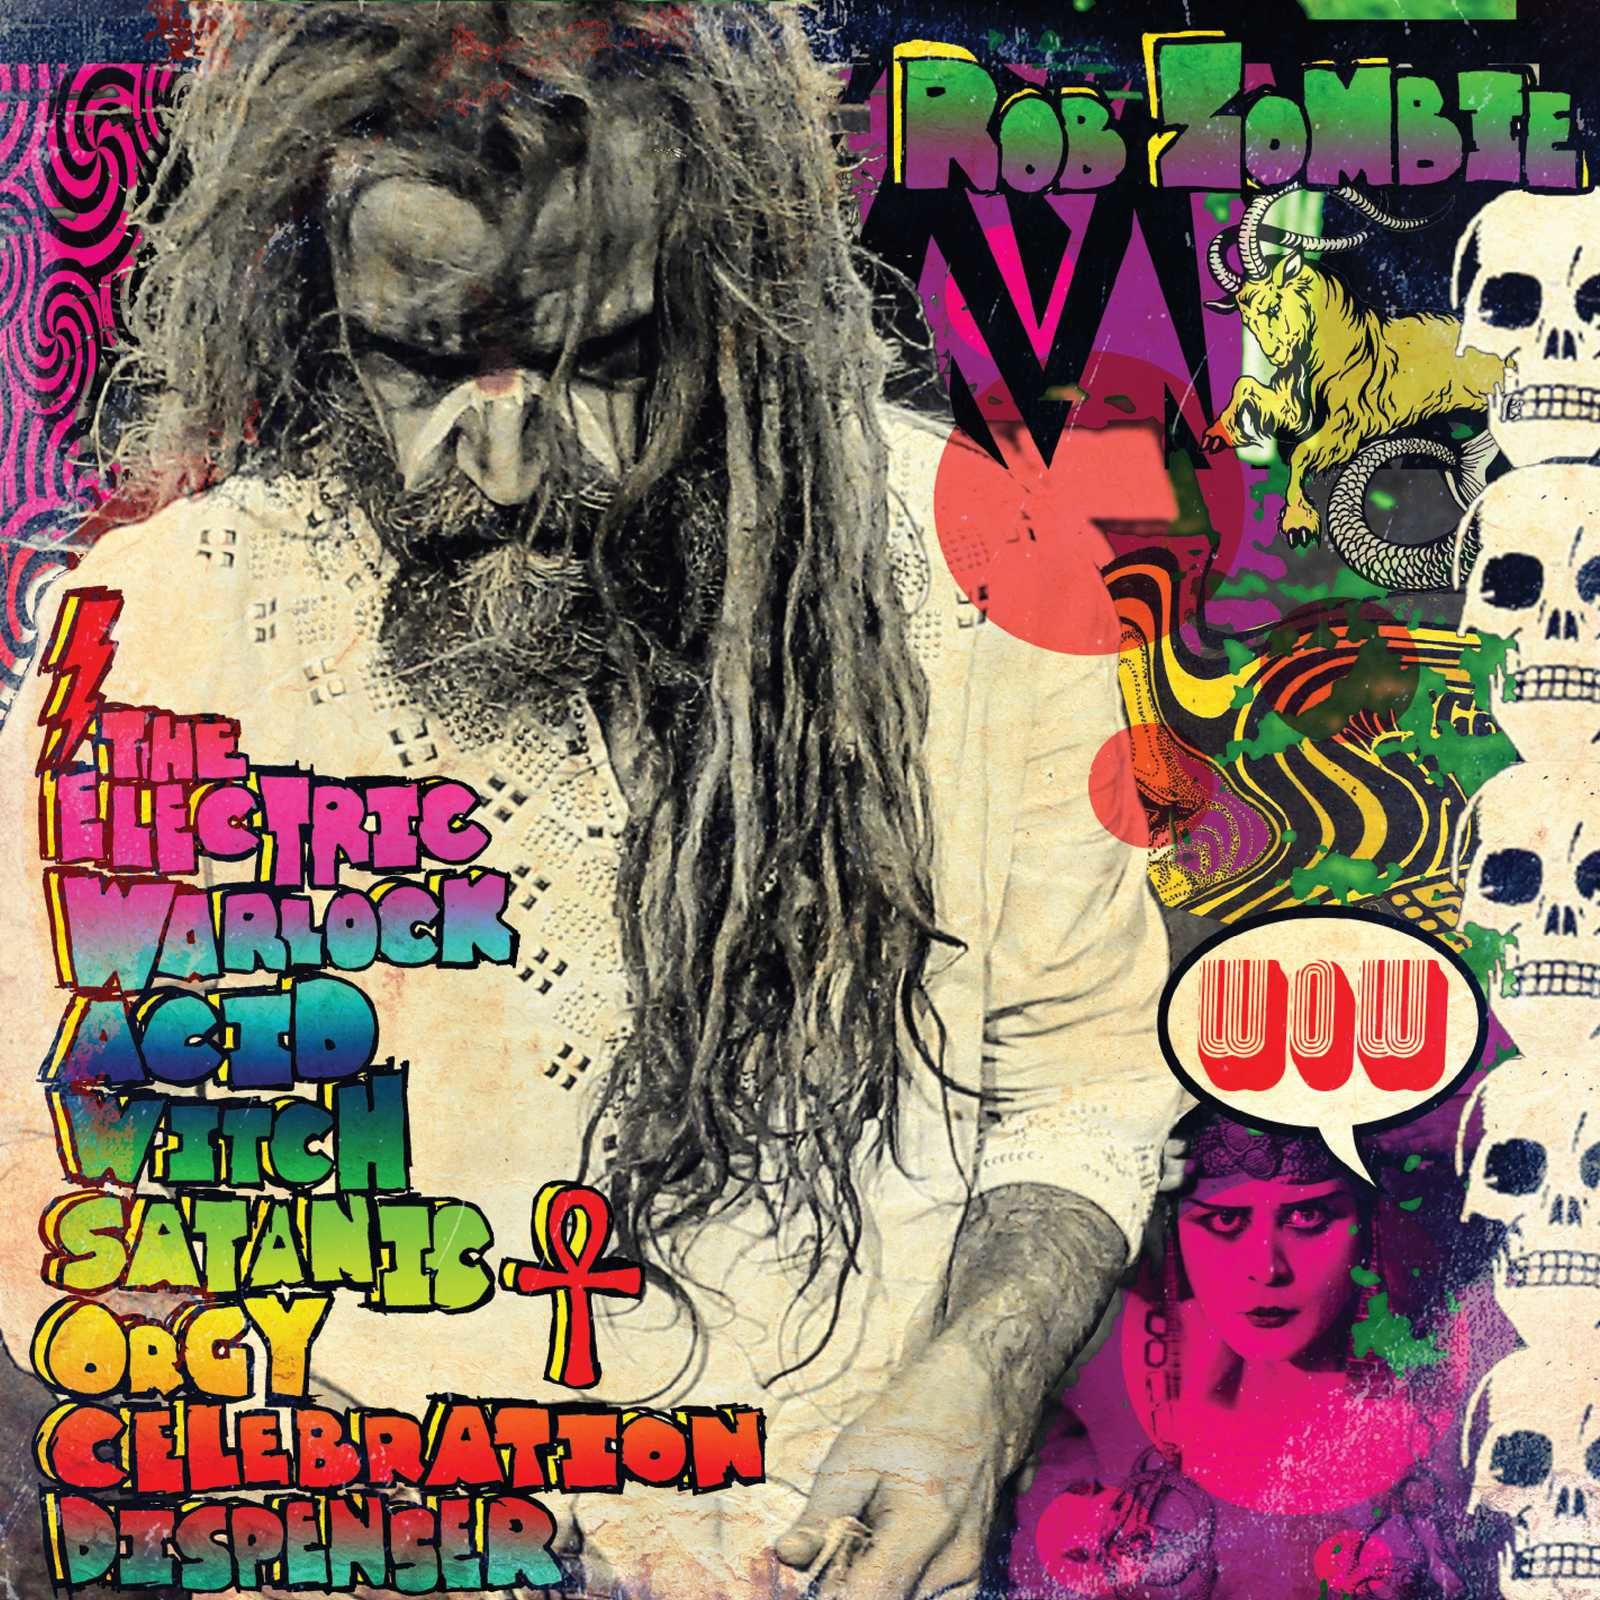 CD review ROB ZOMBIE &quot&#x3B;The Electric Warlock Acid Witch Satanic Orgy Celebration Dispenser&quot&#x3B;